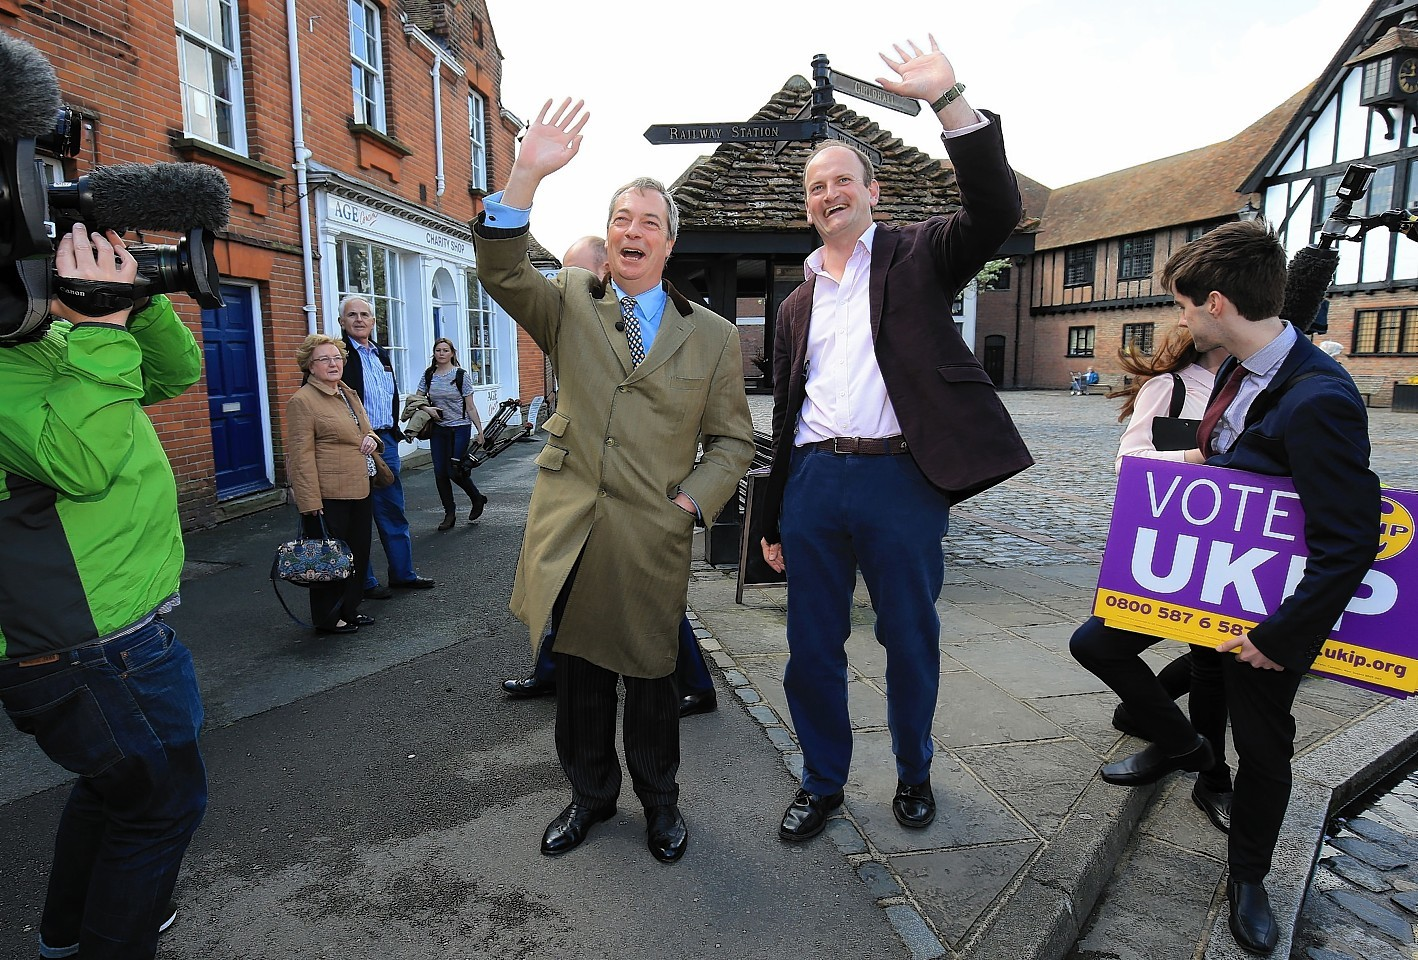 Ukip leader Nigel Farage is joined by Douglas Carswell Ukip parliamentary candidate for Clacton, while canvassing for support during a walk about in Sandwich, Ken